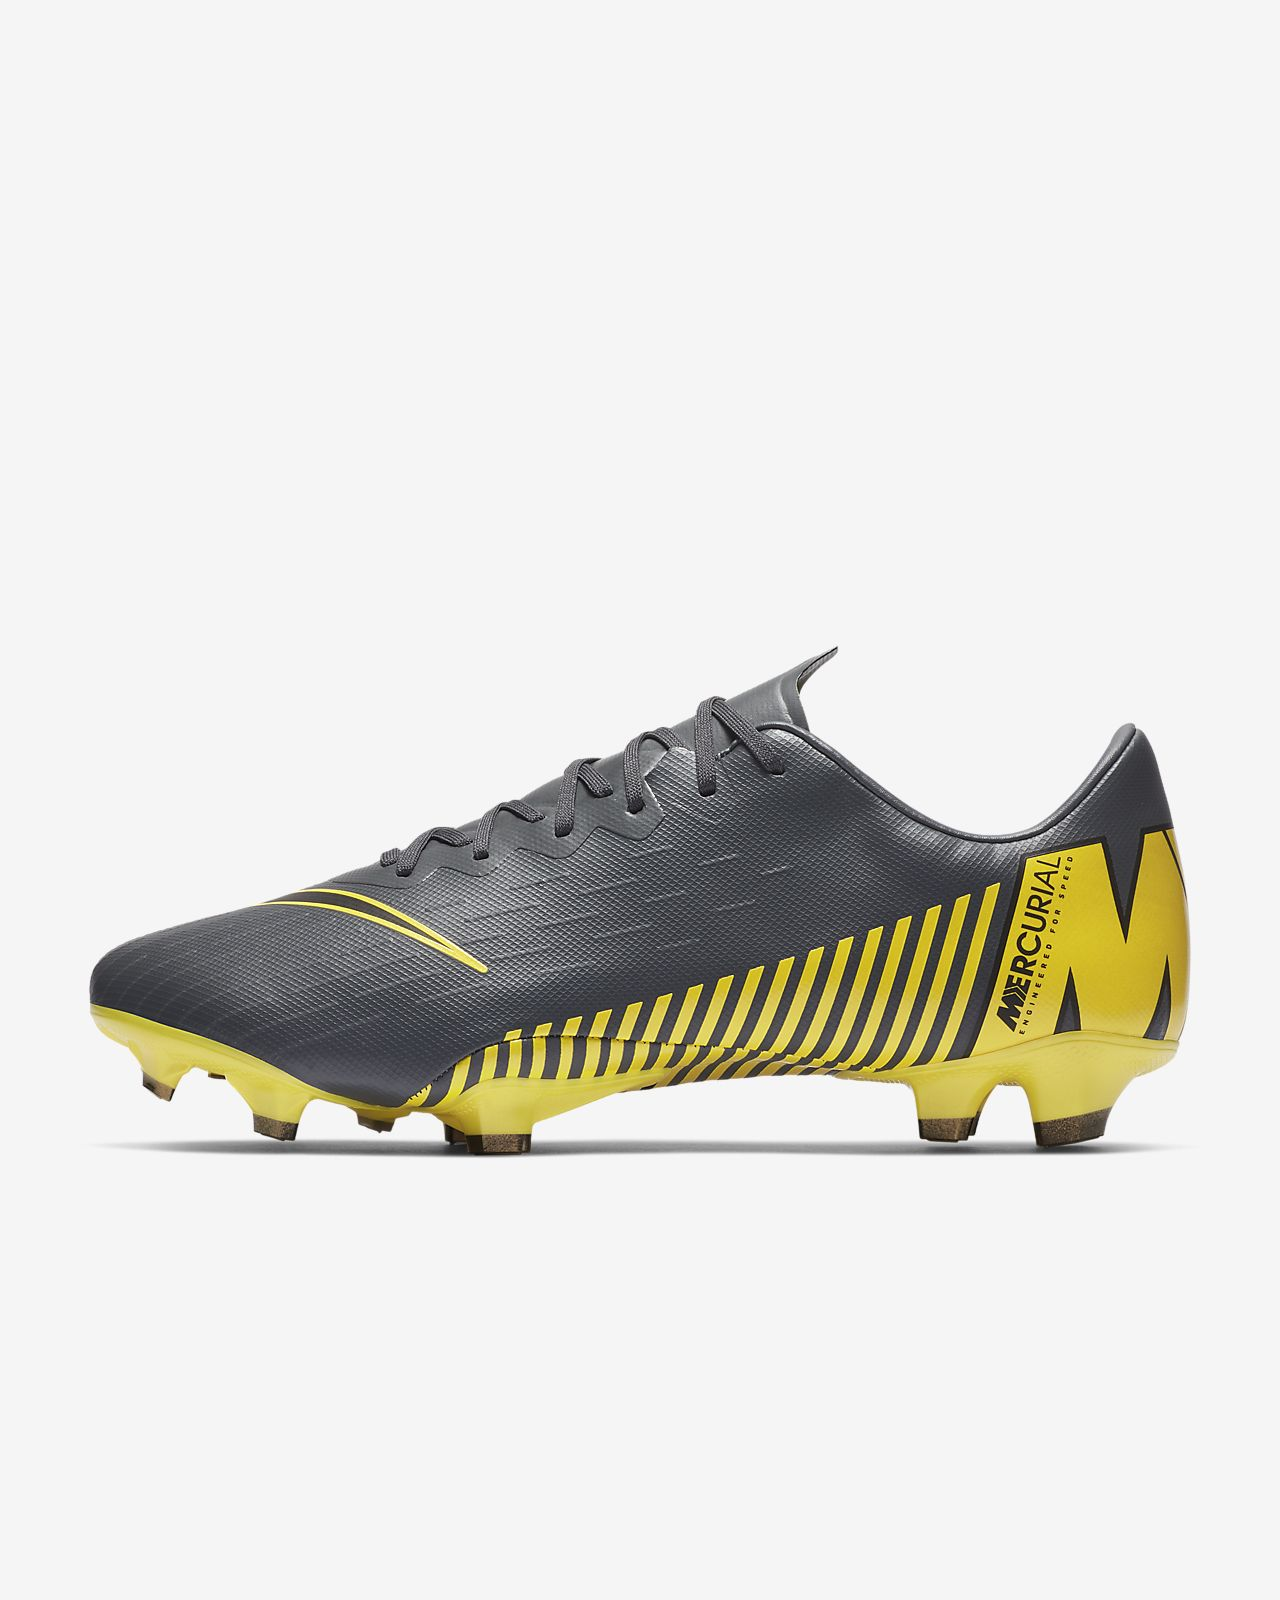 43c4b127275 Nike Vapor 12 Pro FG Game Over Firm-Ground Football Boot. Nike.com AU